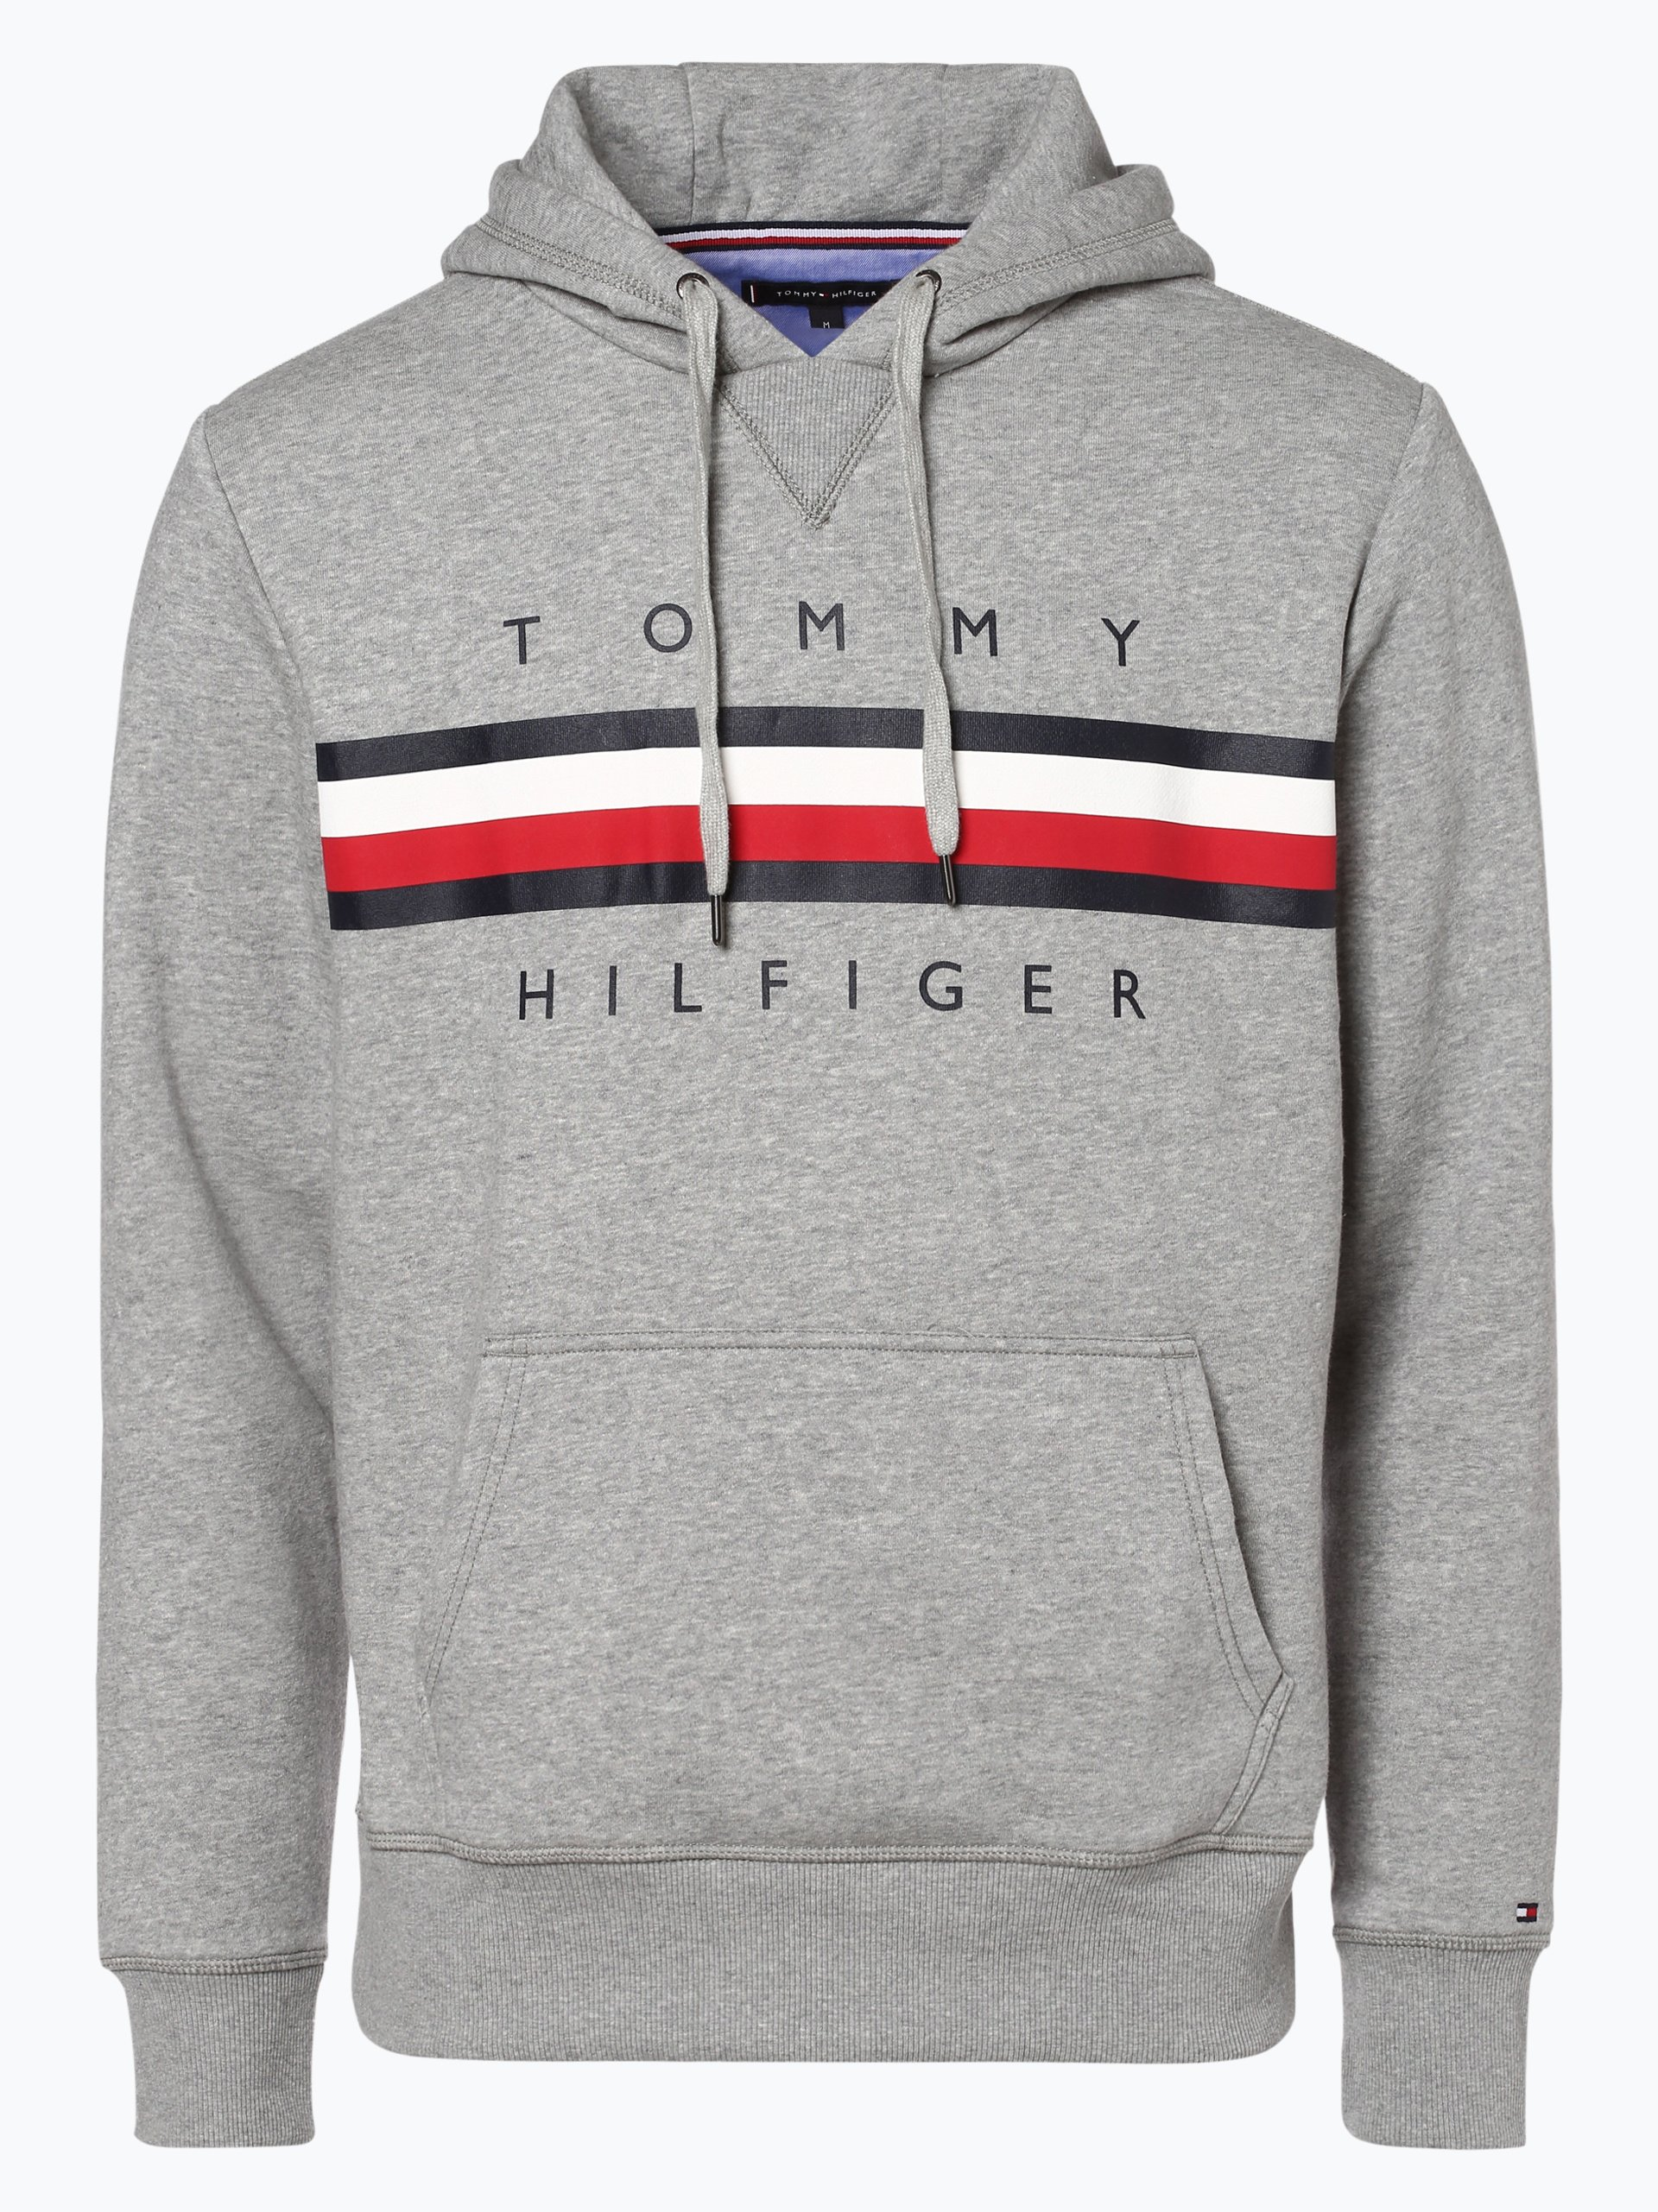 tommy hilfiger herren sweatshirt online kaufen vangraaf com. Black Bedroom Furniture Sets. Home Design Ideas